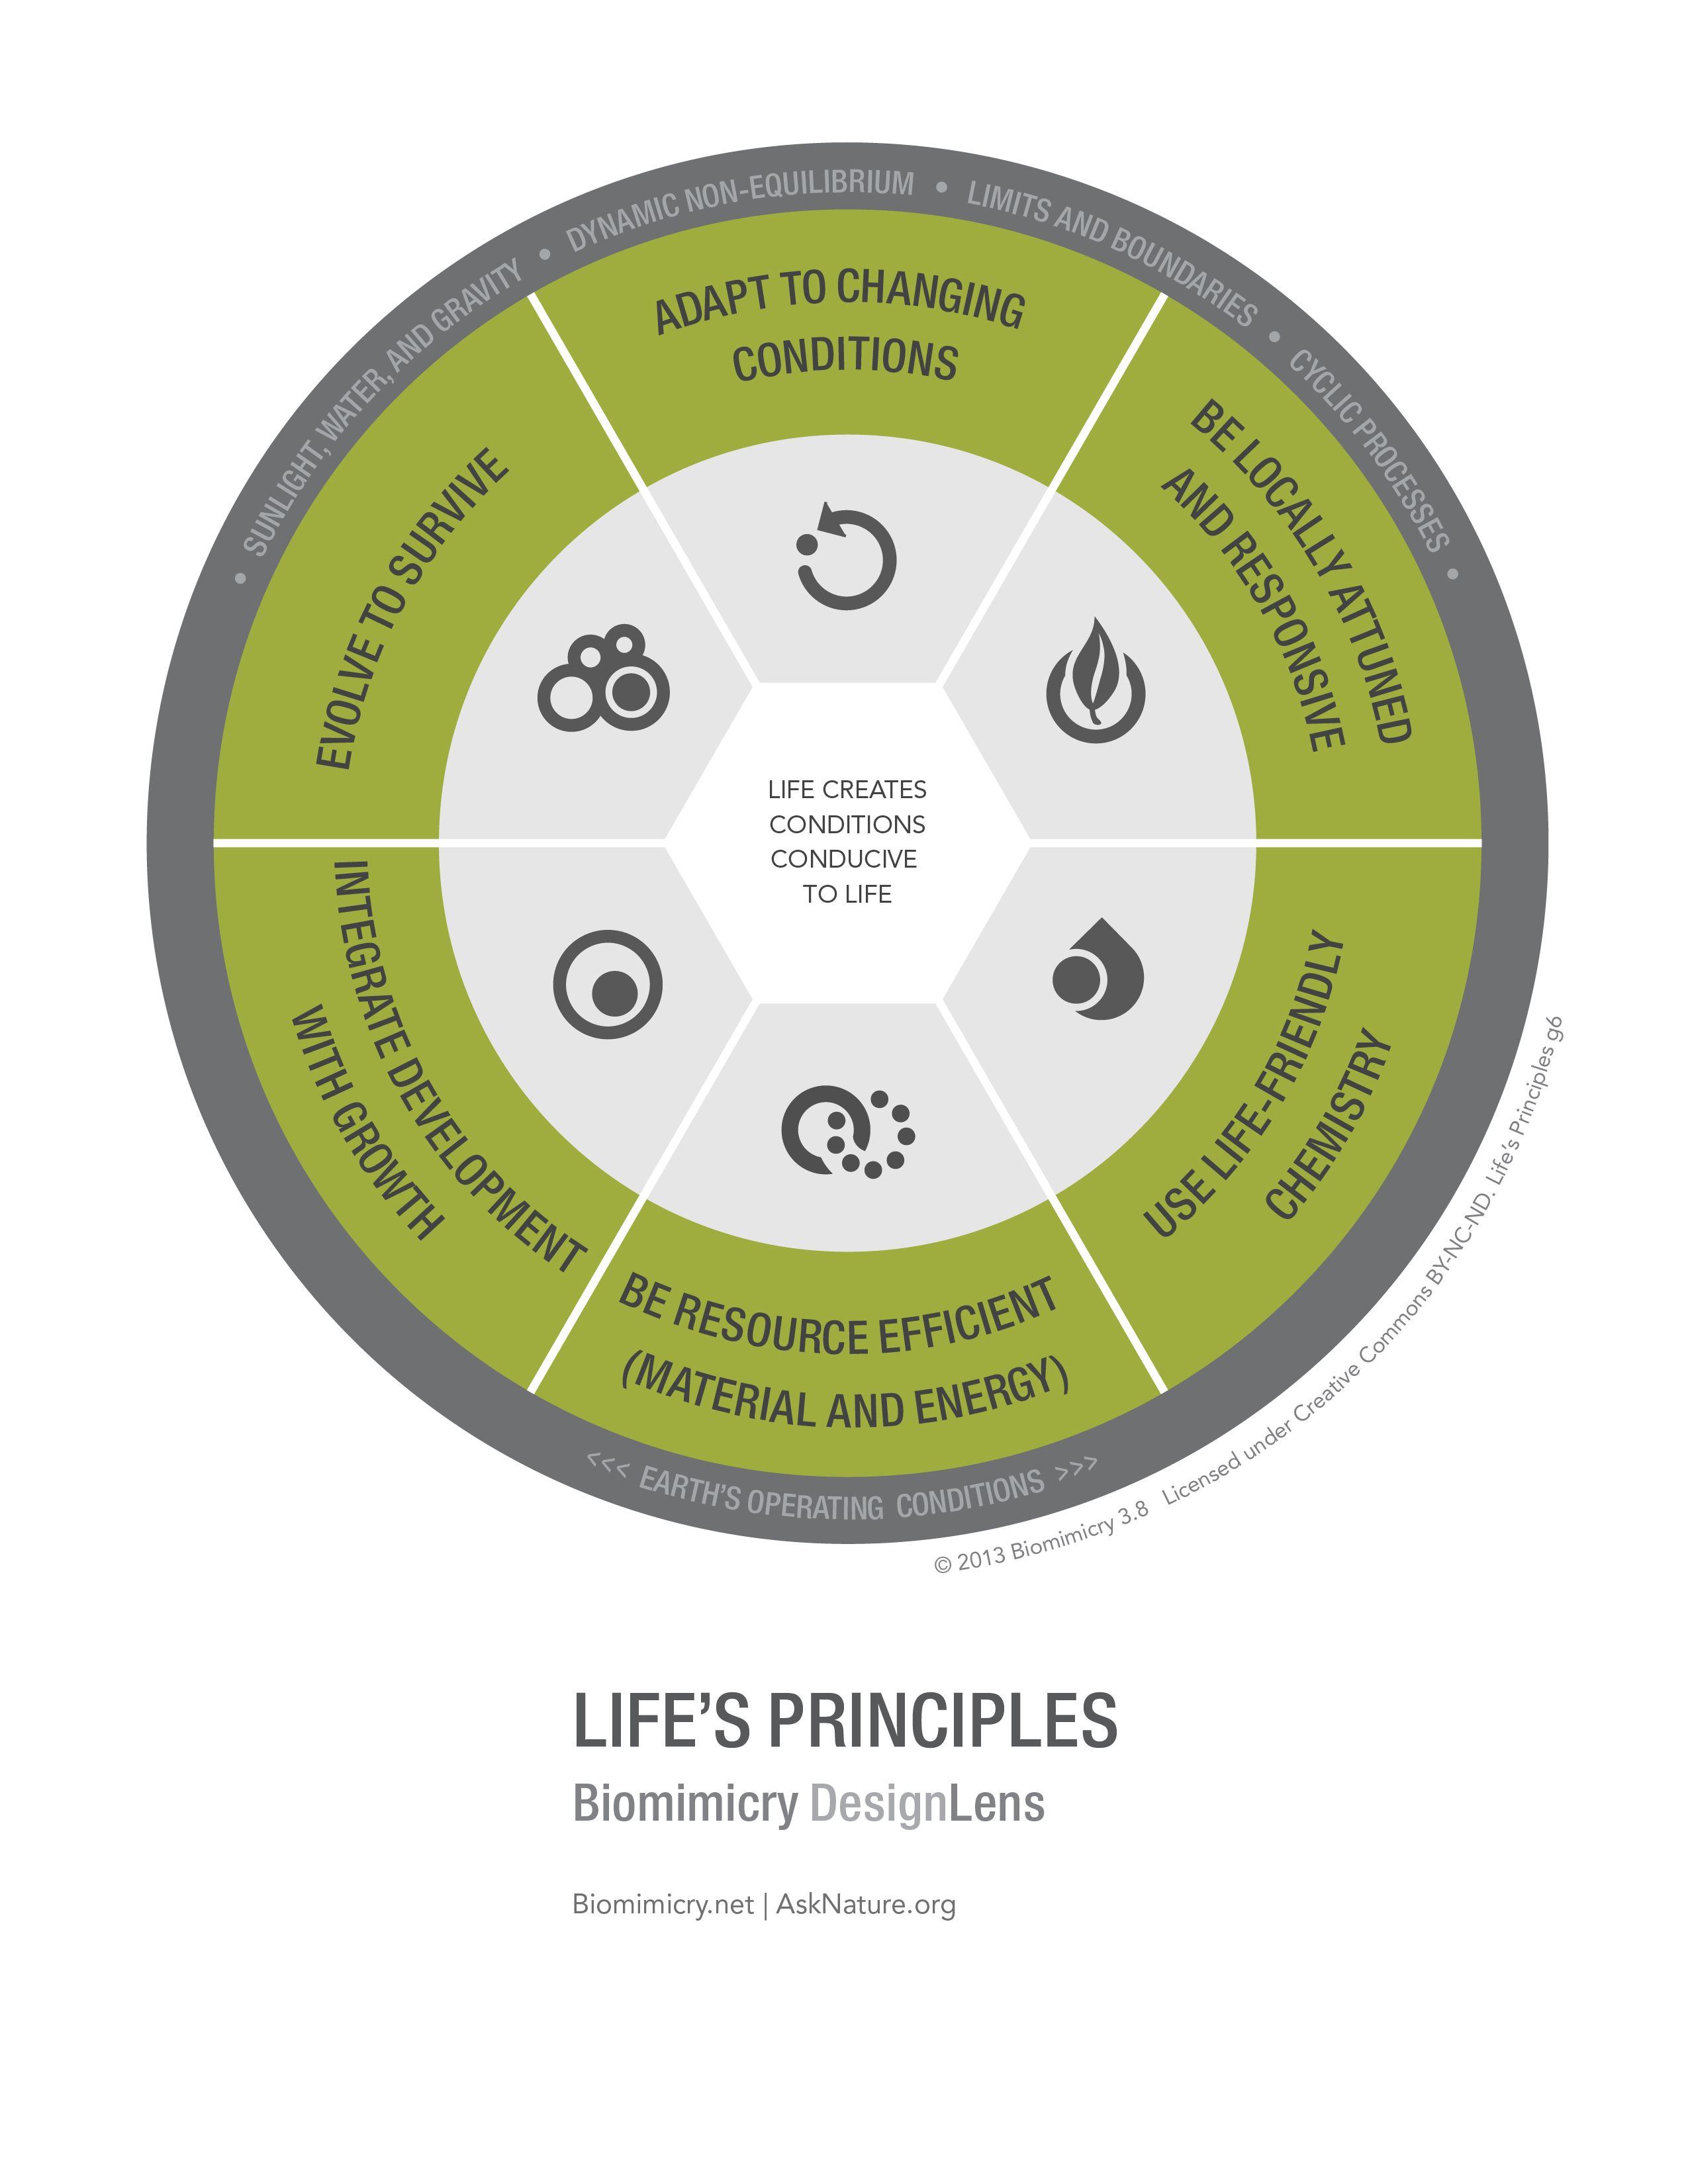 Pin by ventra asana on Biomimicry Circular economy, Life